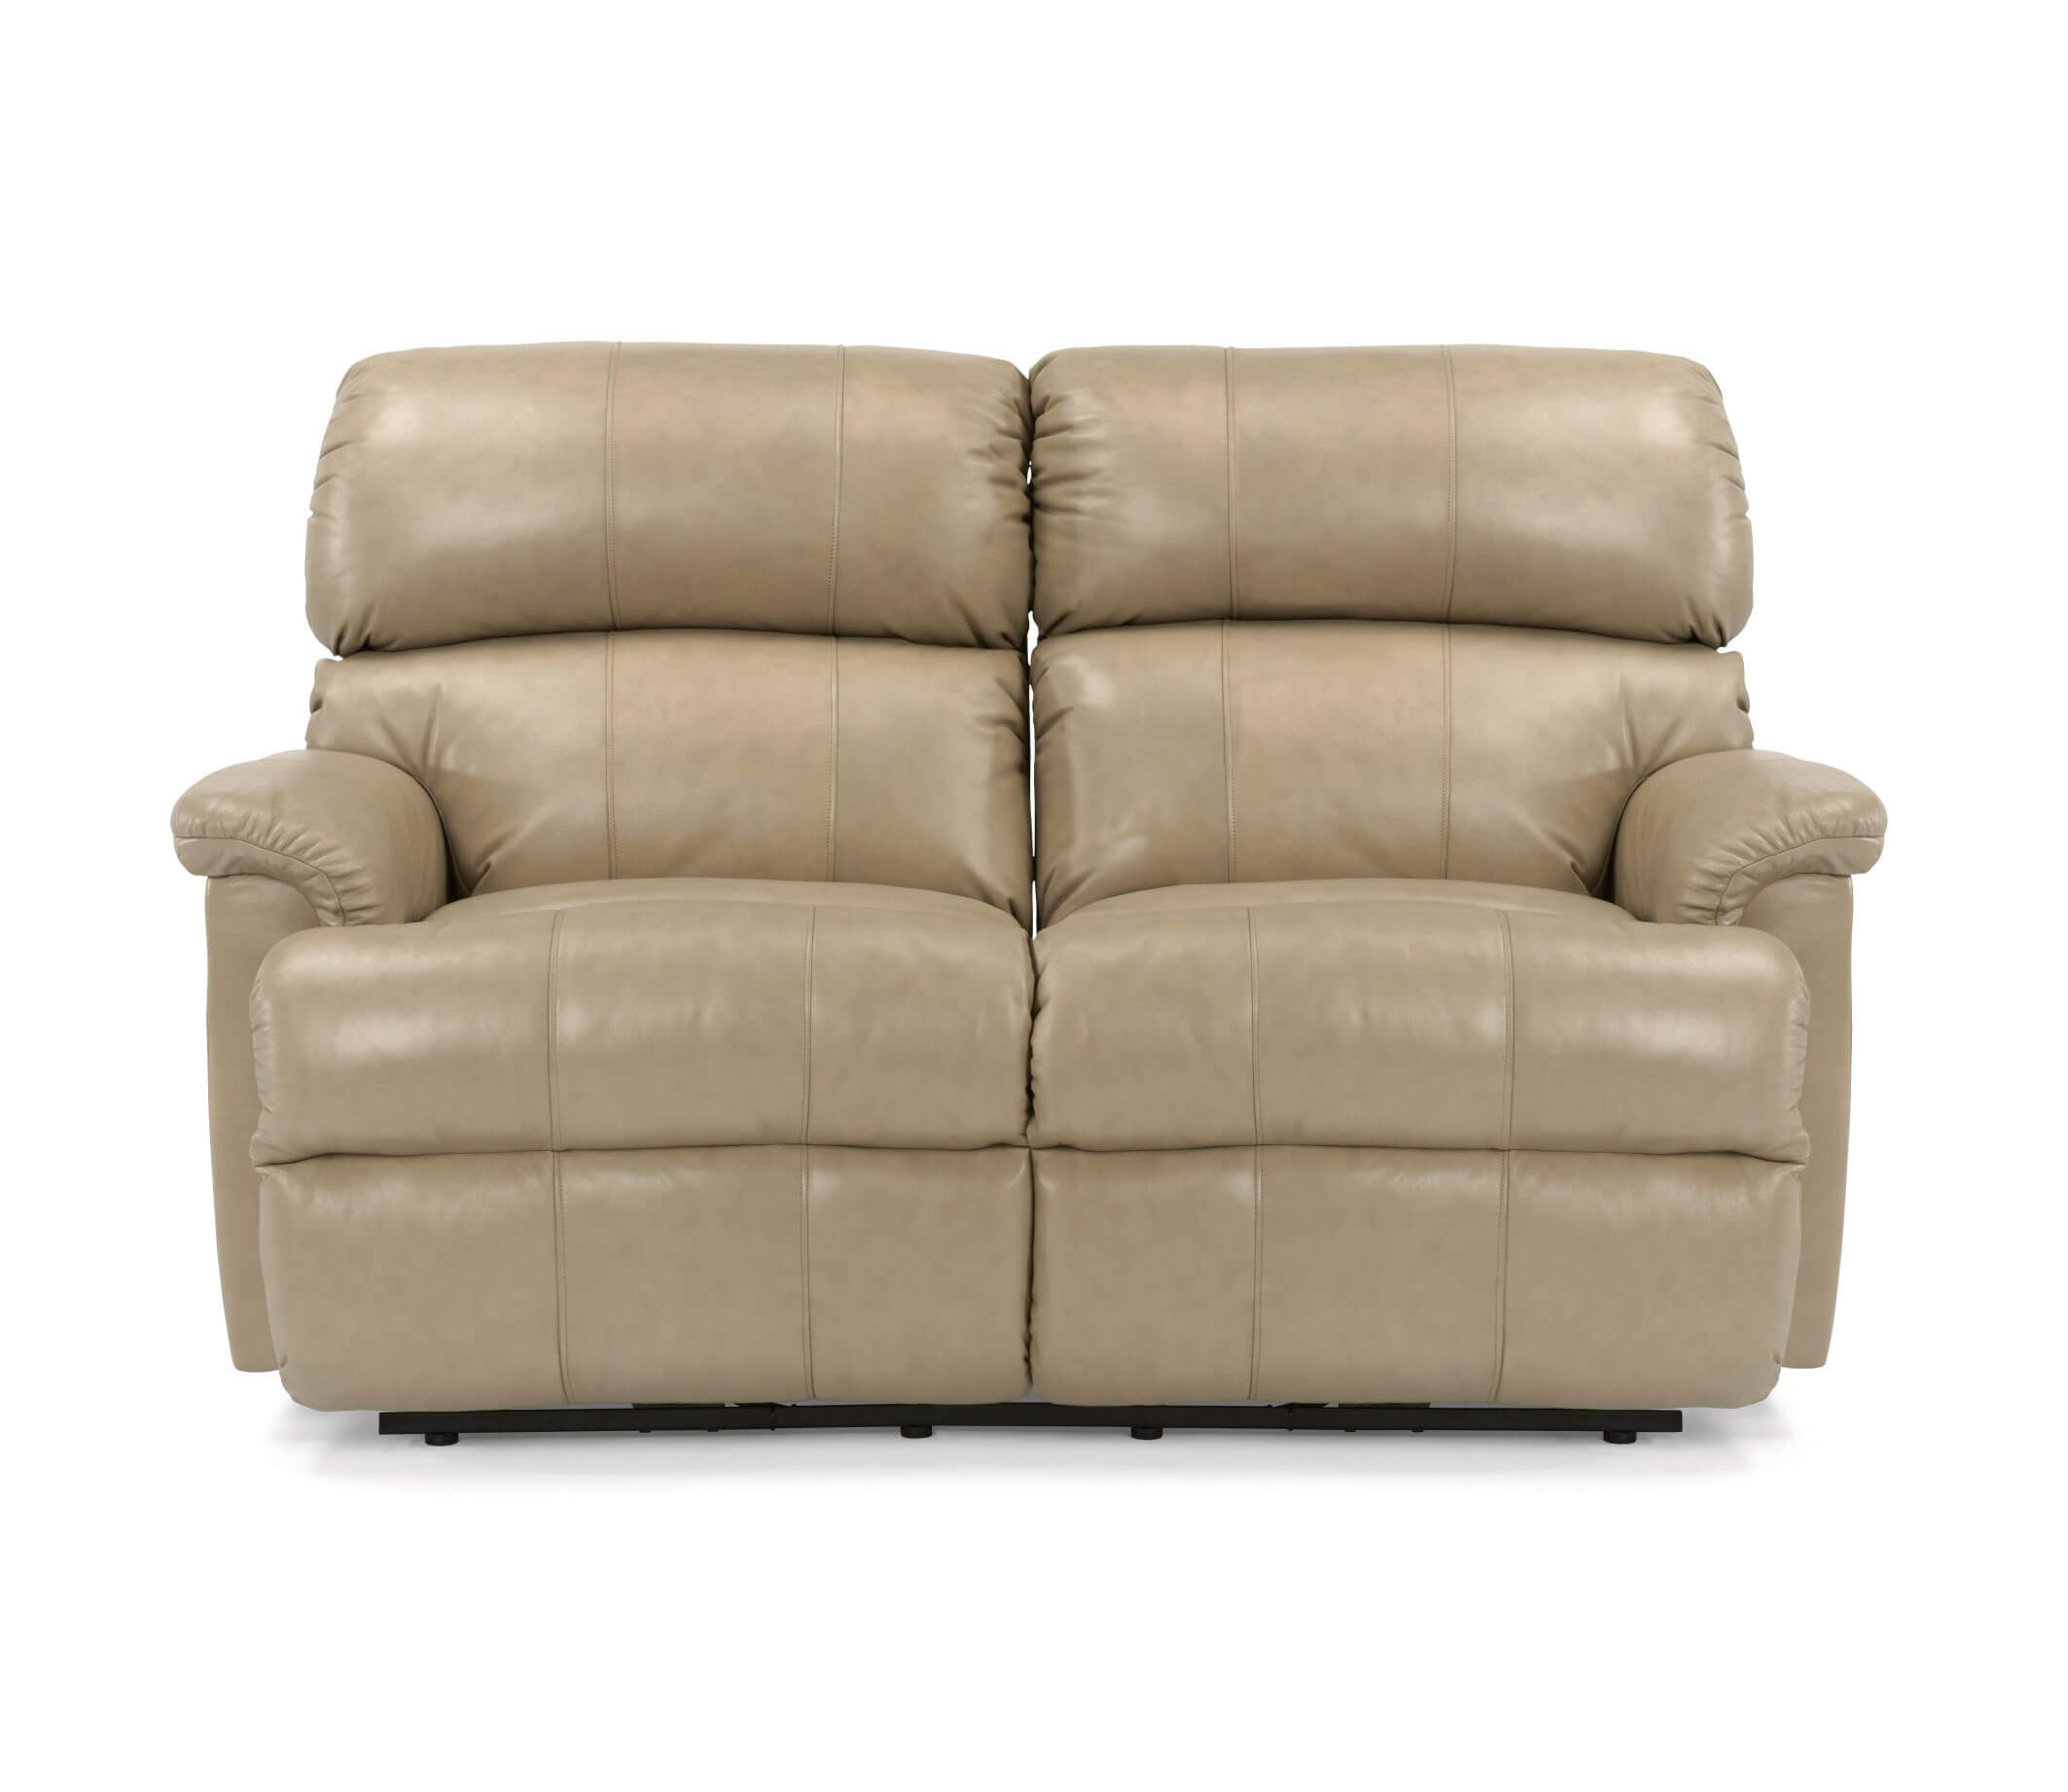 Chicago Leather Sofa & Loveseat | Bedrooms & More, Seattle